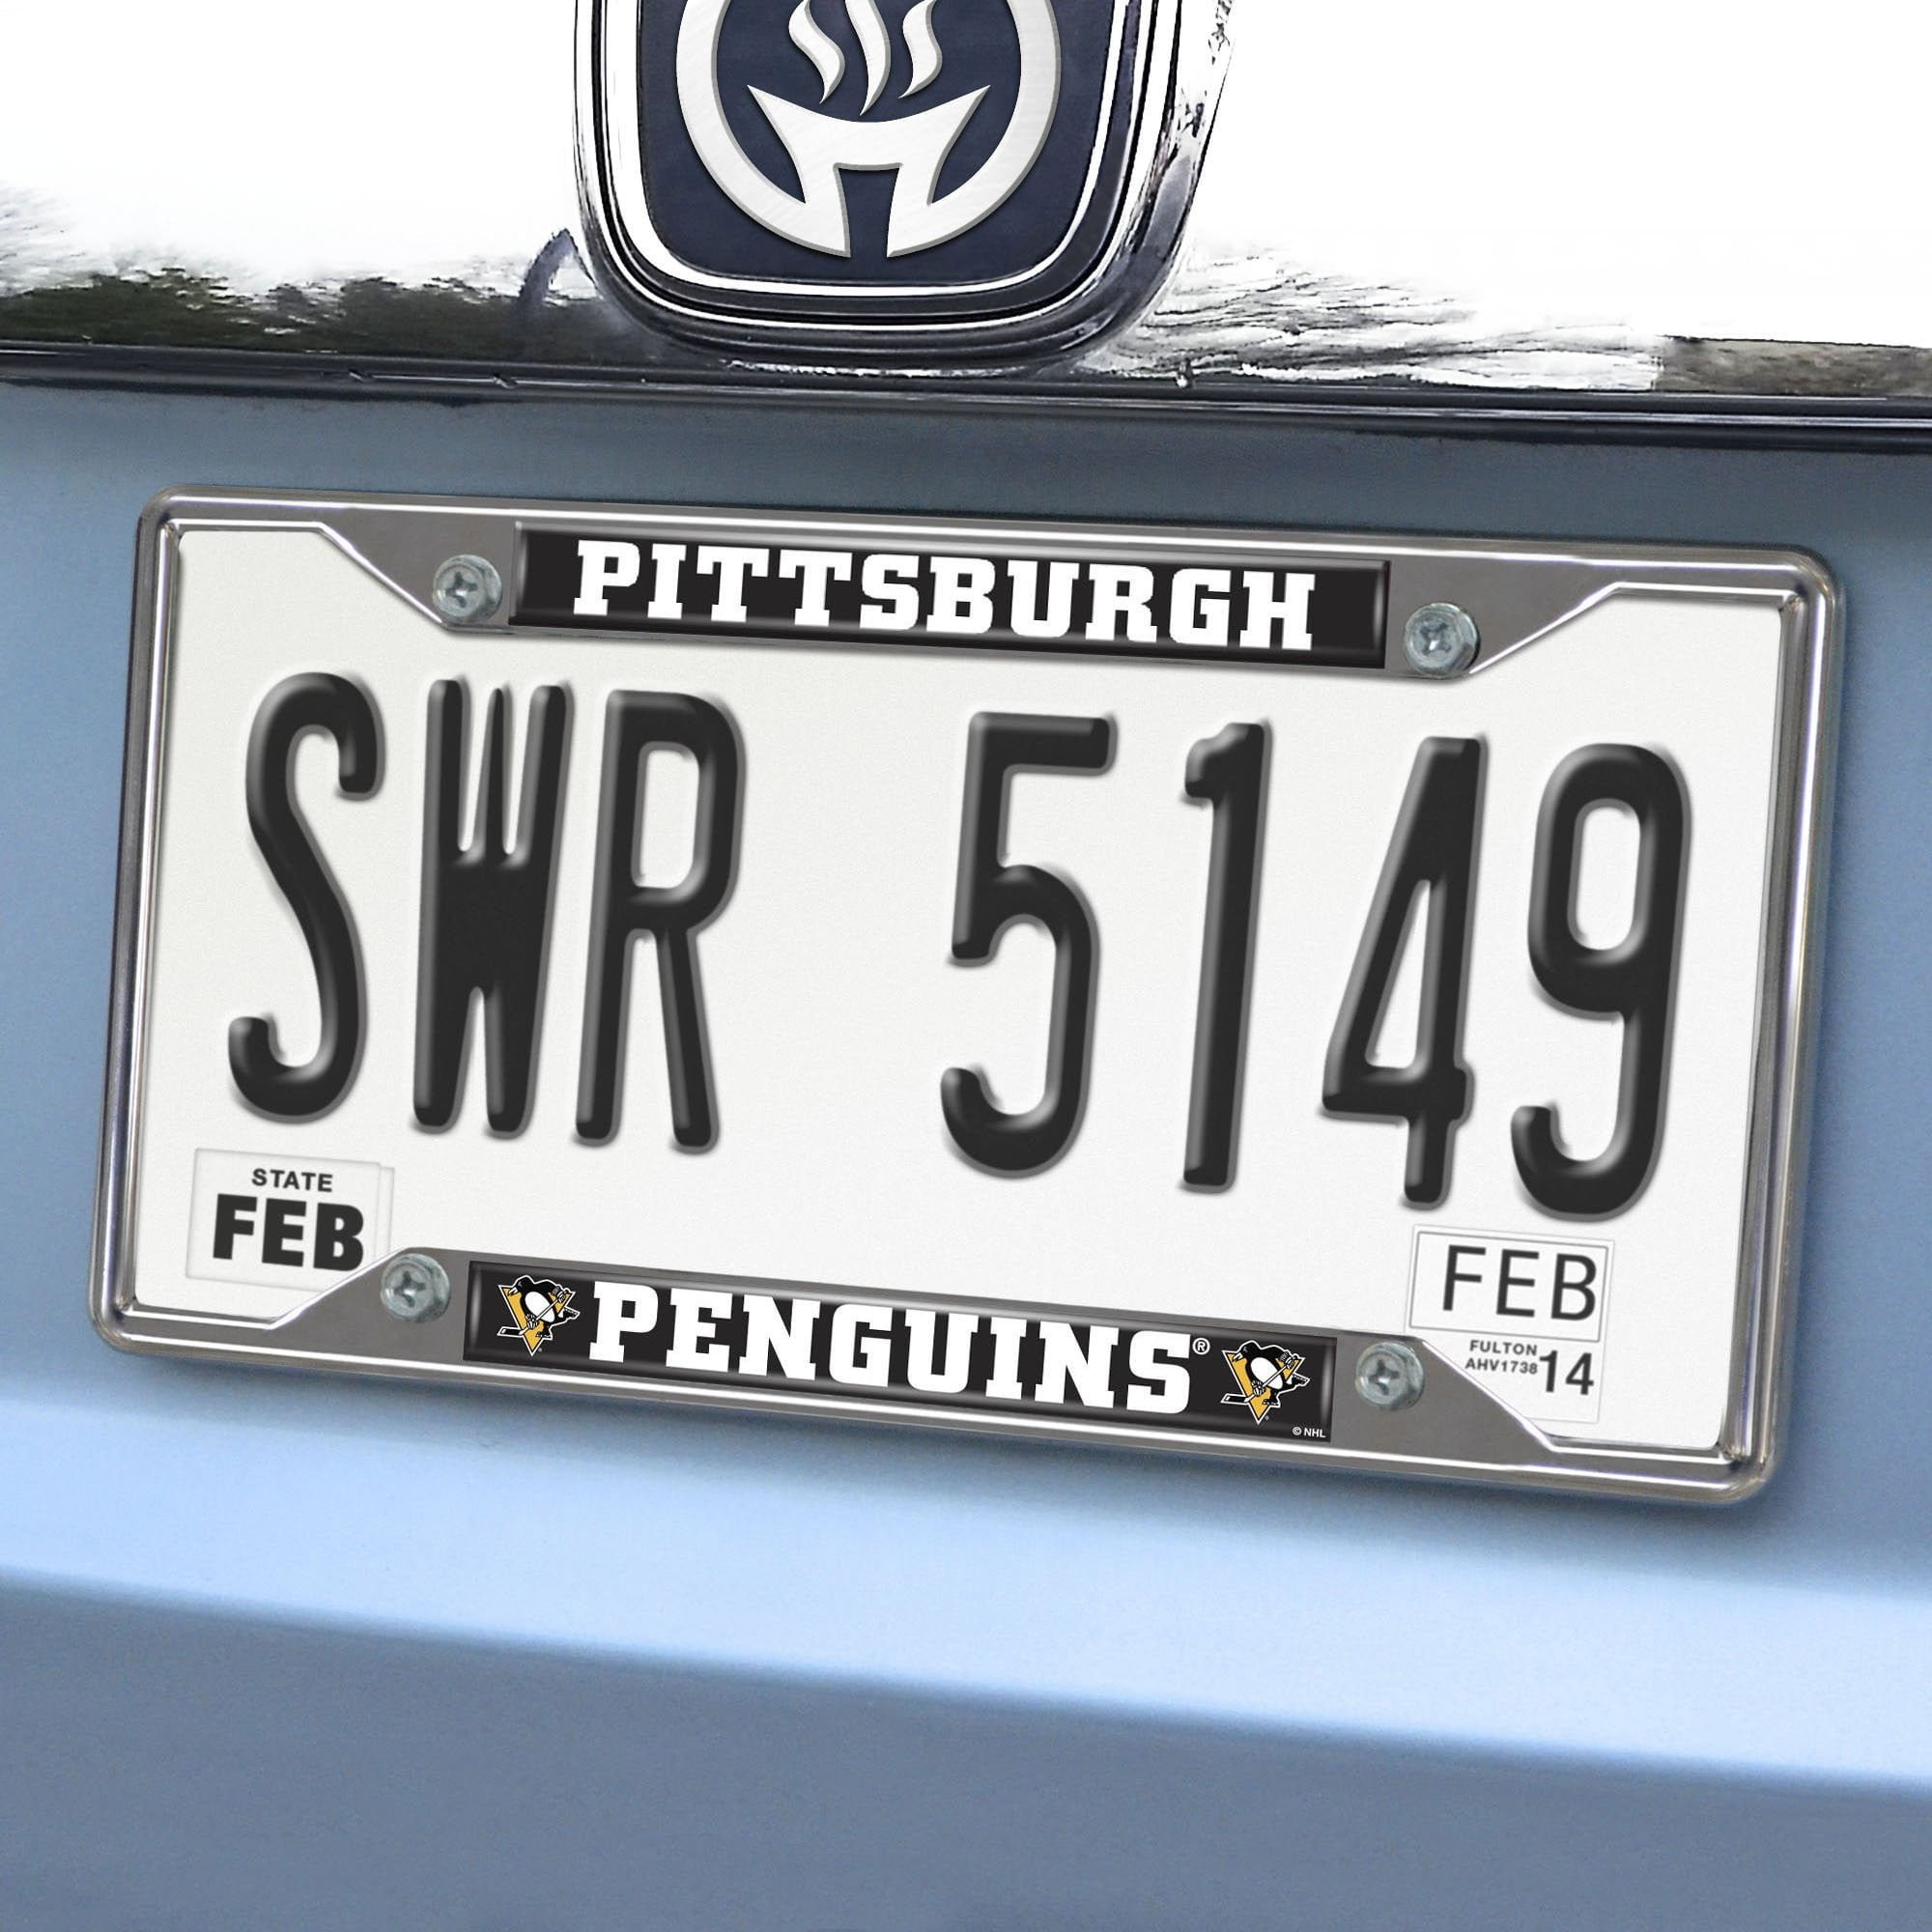 NHL - Pittsburgh Penguins  License Plate Frame & Accessories